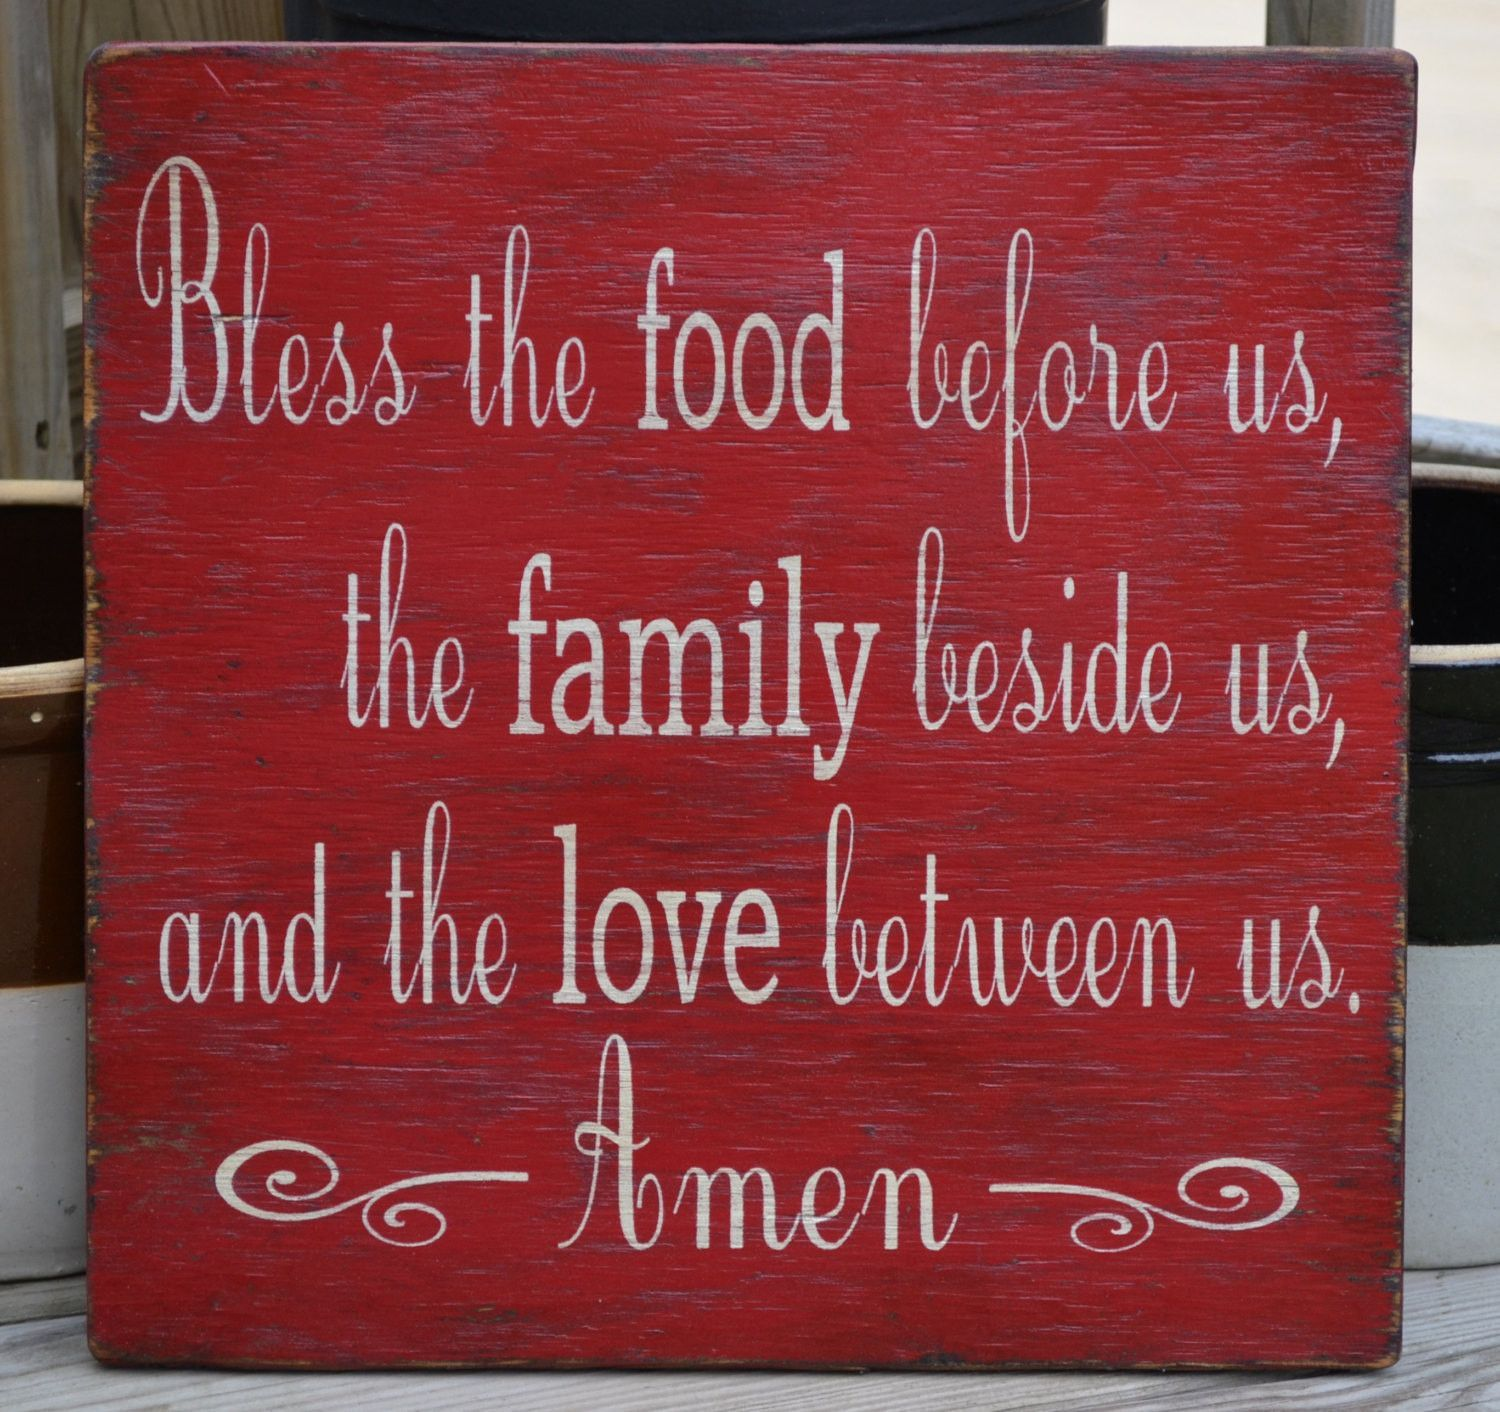 Blessing Sign Distressed Rustic Bless The Food Before Us Signs Farmhouse Cottage Style Kitchen SignsHome Decor KitchenKitchen Dining RoomsKitchen